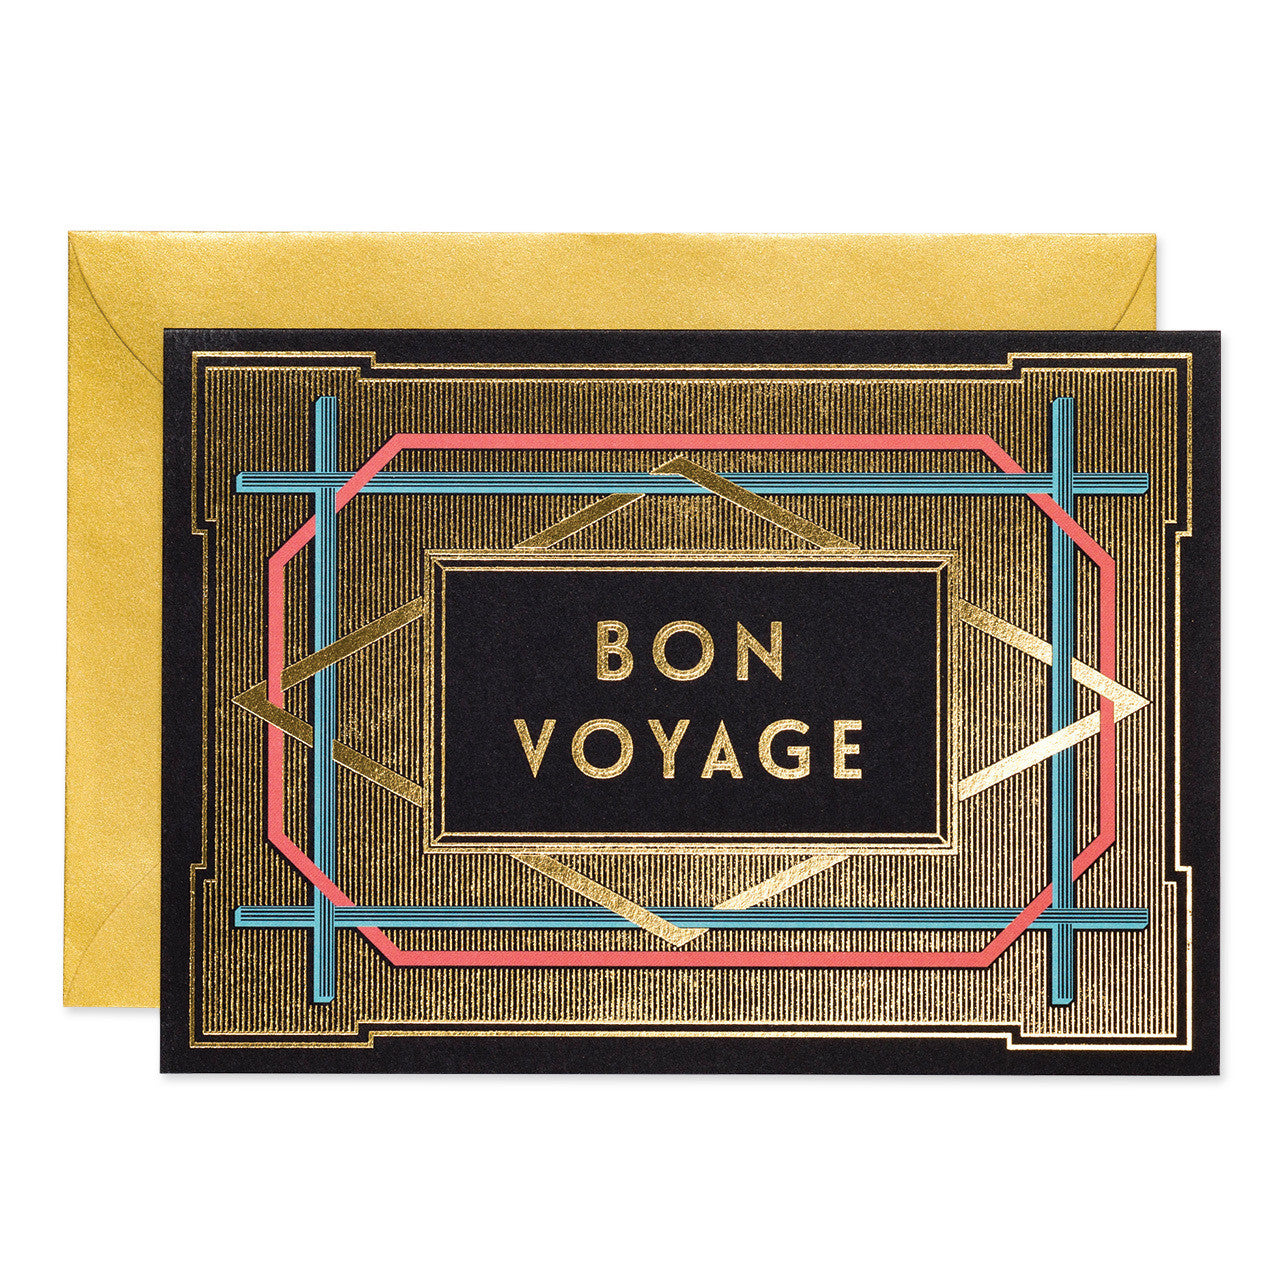 Bon voyage art deco greeting card pack of 6 chase and wonder bon voyage art deco greeting card pack of 6 kristyandbryce Image collections